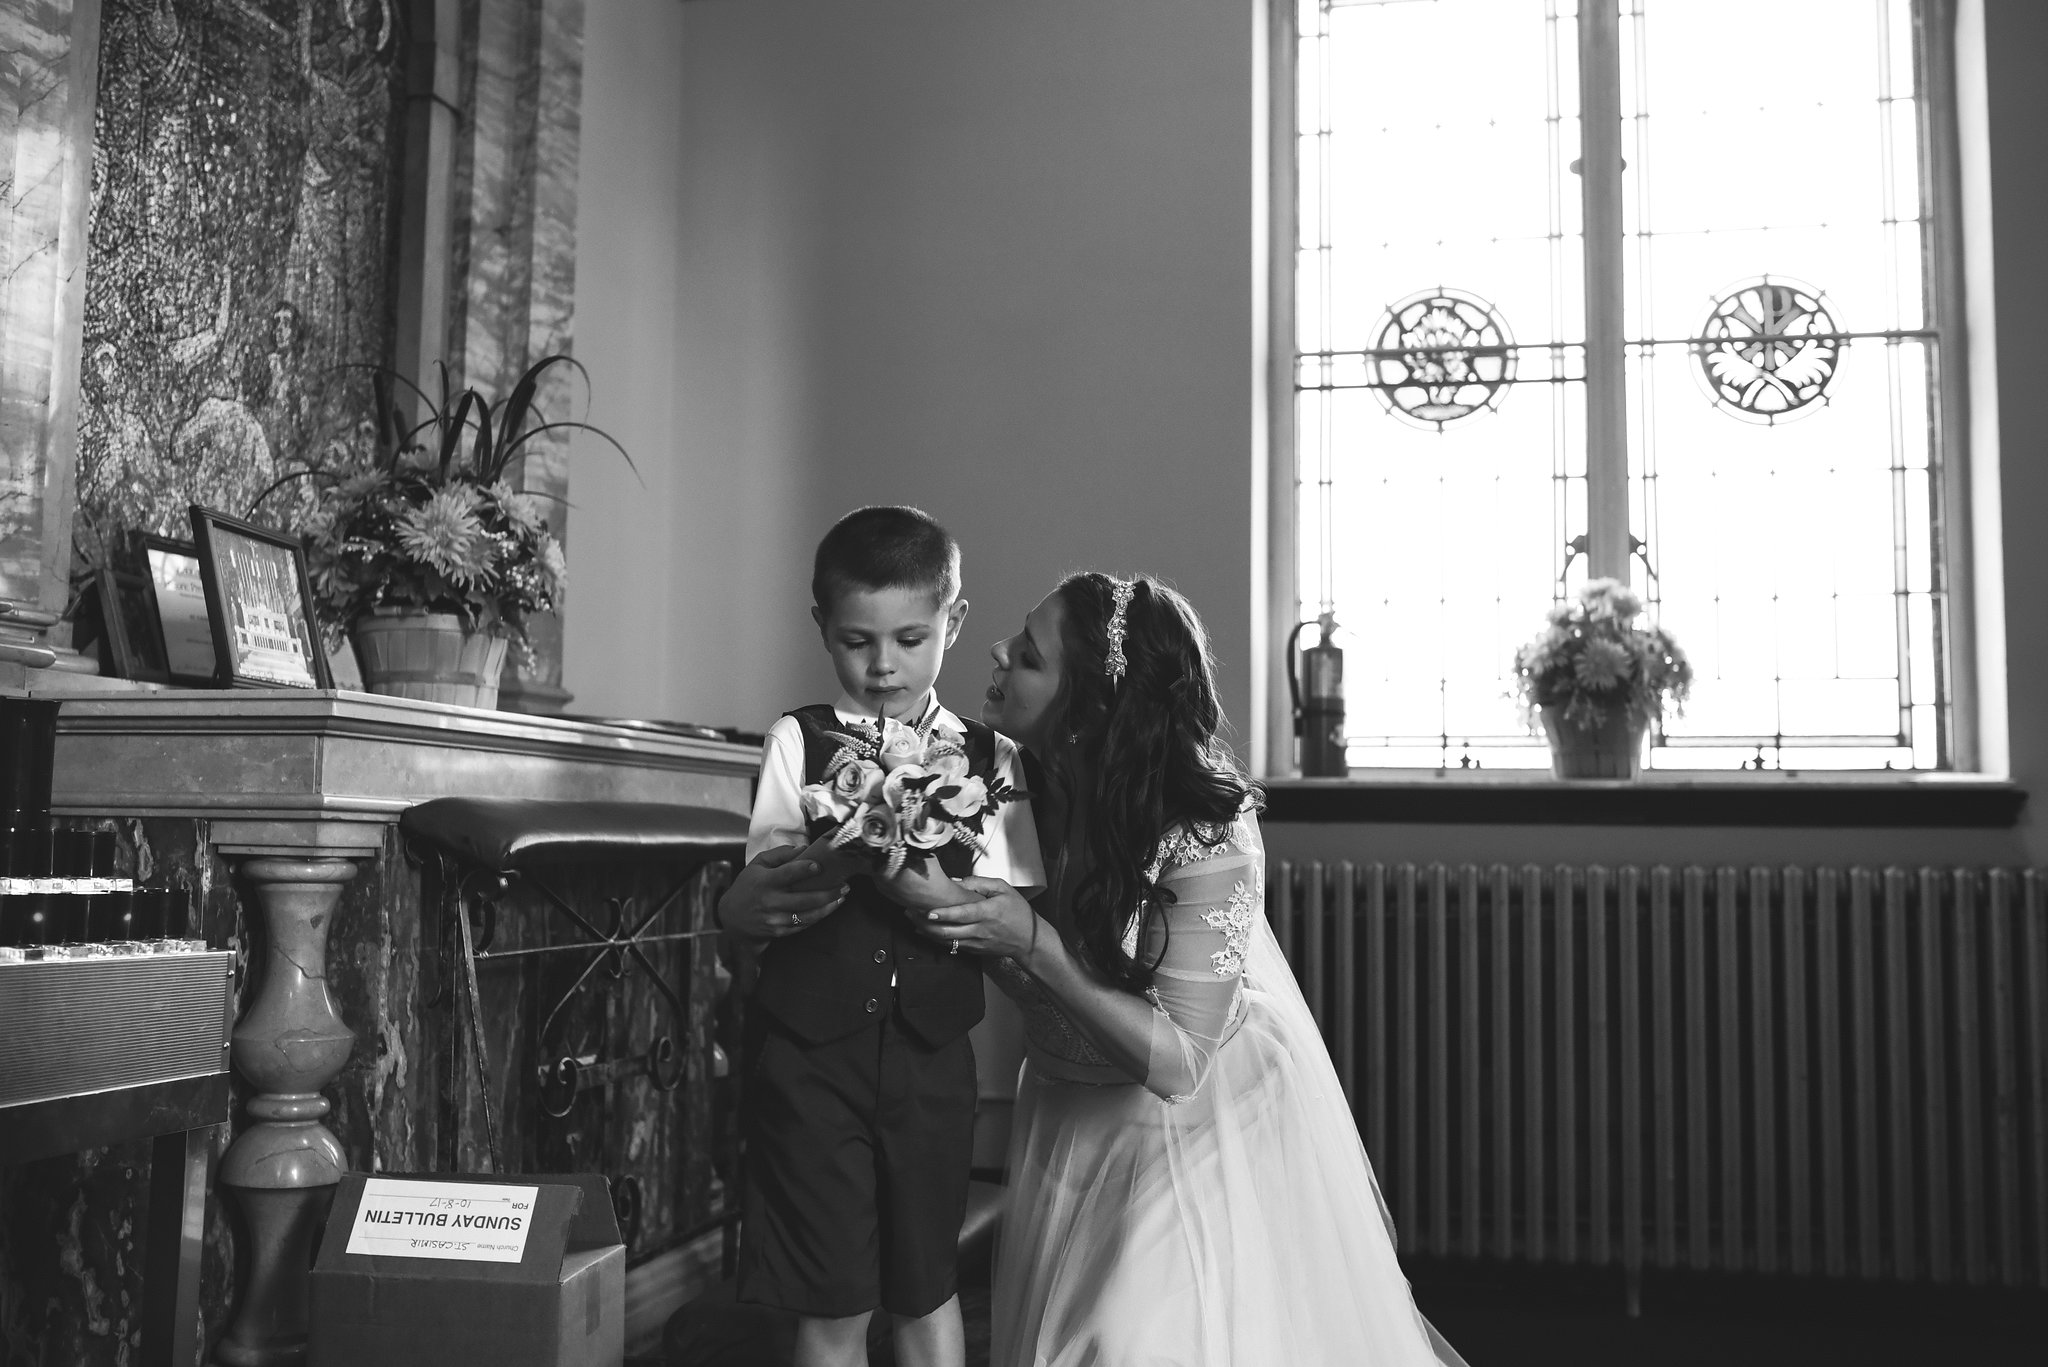 Baltimore, Canton, Church Wedding, Modern, Outdoors, Maryland Wedding Photographer, Romantic, Classic, St. Casimir Church, Black and White Photo, Bride talking to little boy with bouquet